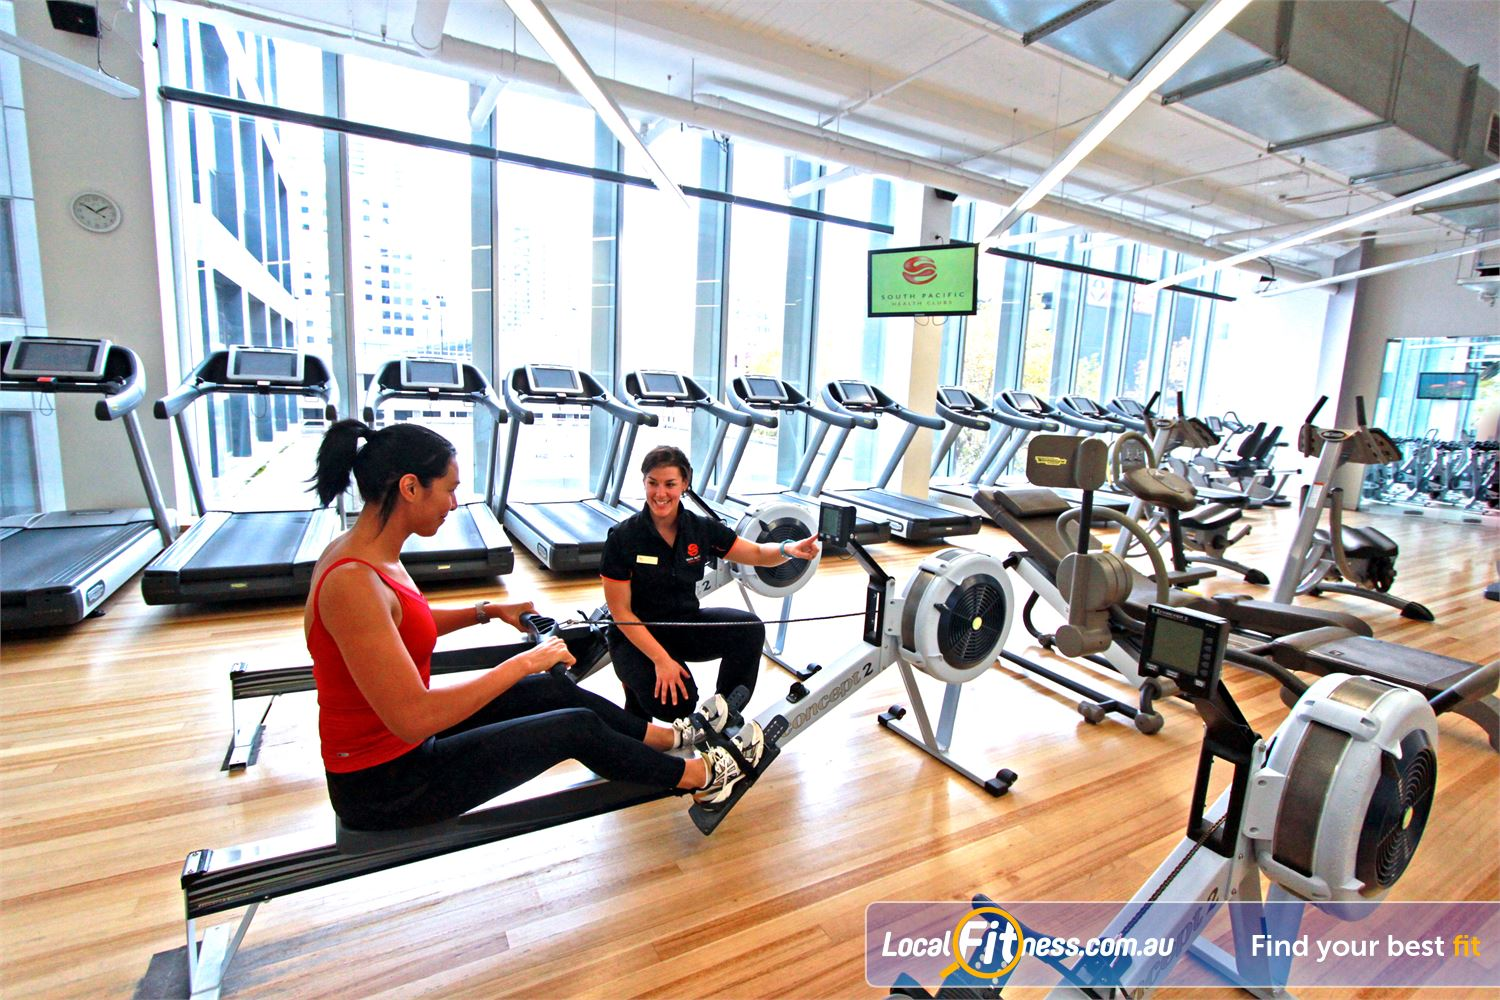 South Pacific Health Clubs Near Southbank Treadmills, cross trainers, cycle bikes rowers and more.